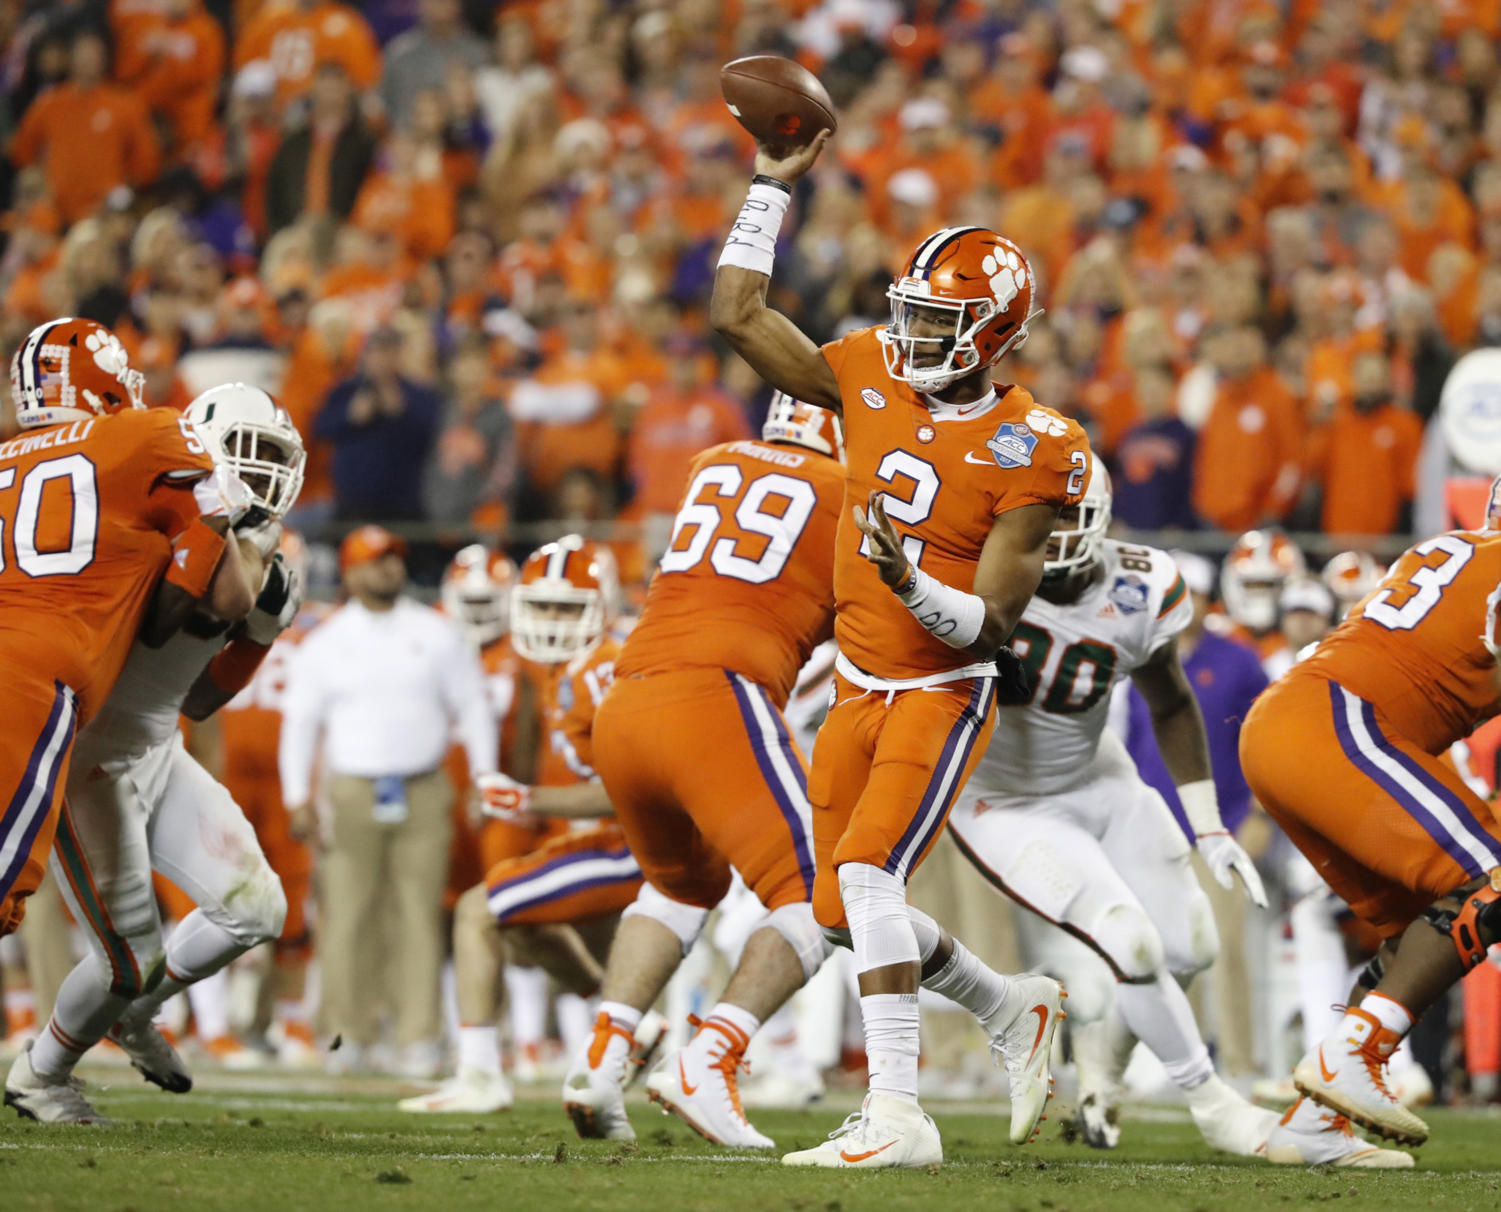 Clemson Tigers quarterback Kelly Bryant (2) sets up to pass in the second quarter against the University of Miami Hurricanes in the ACC Championship Game Dec. 2, 2017 in Charlotte, N.C. (Al Diaz/Miami Herald/TNS)